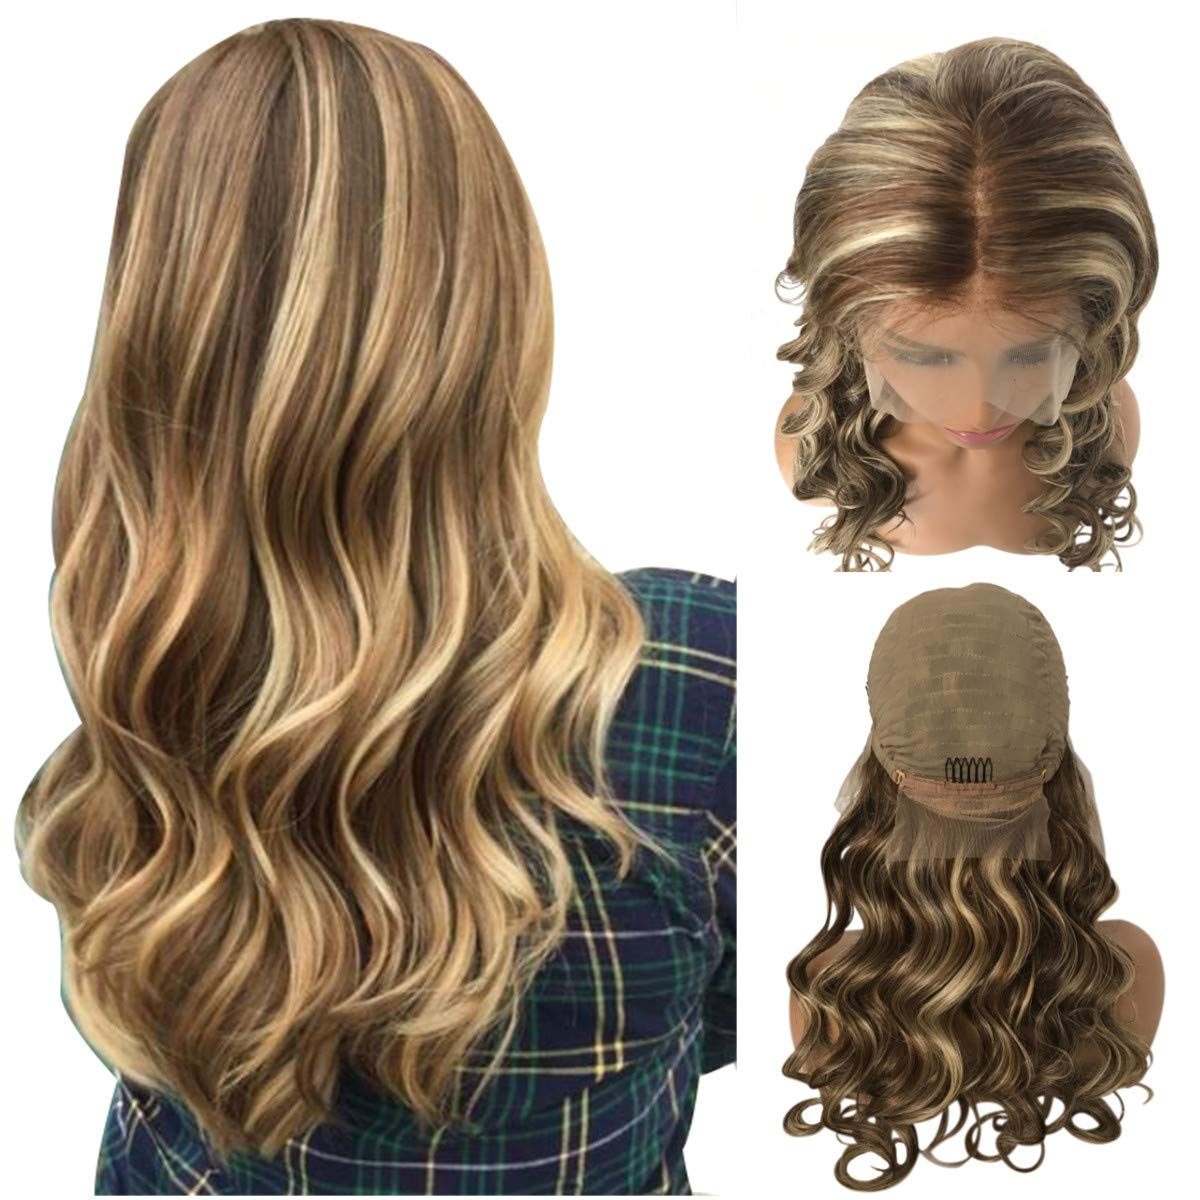 Munx 14 Inch Ombre Brown Mixed Highlight Blonde Wig Loose Wave 100% Human Hair Wigs 13x4 Lace Front Pre-plucked Curly Wig With Baby Hair 150% Density Suitable Black and White